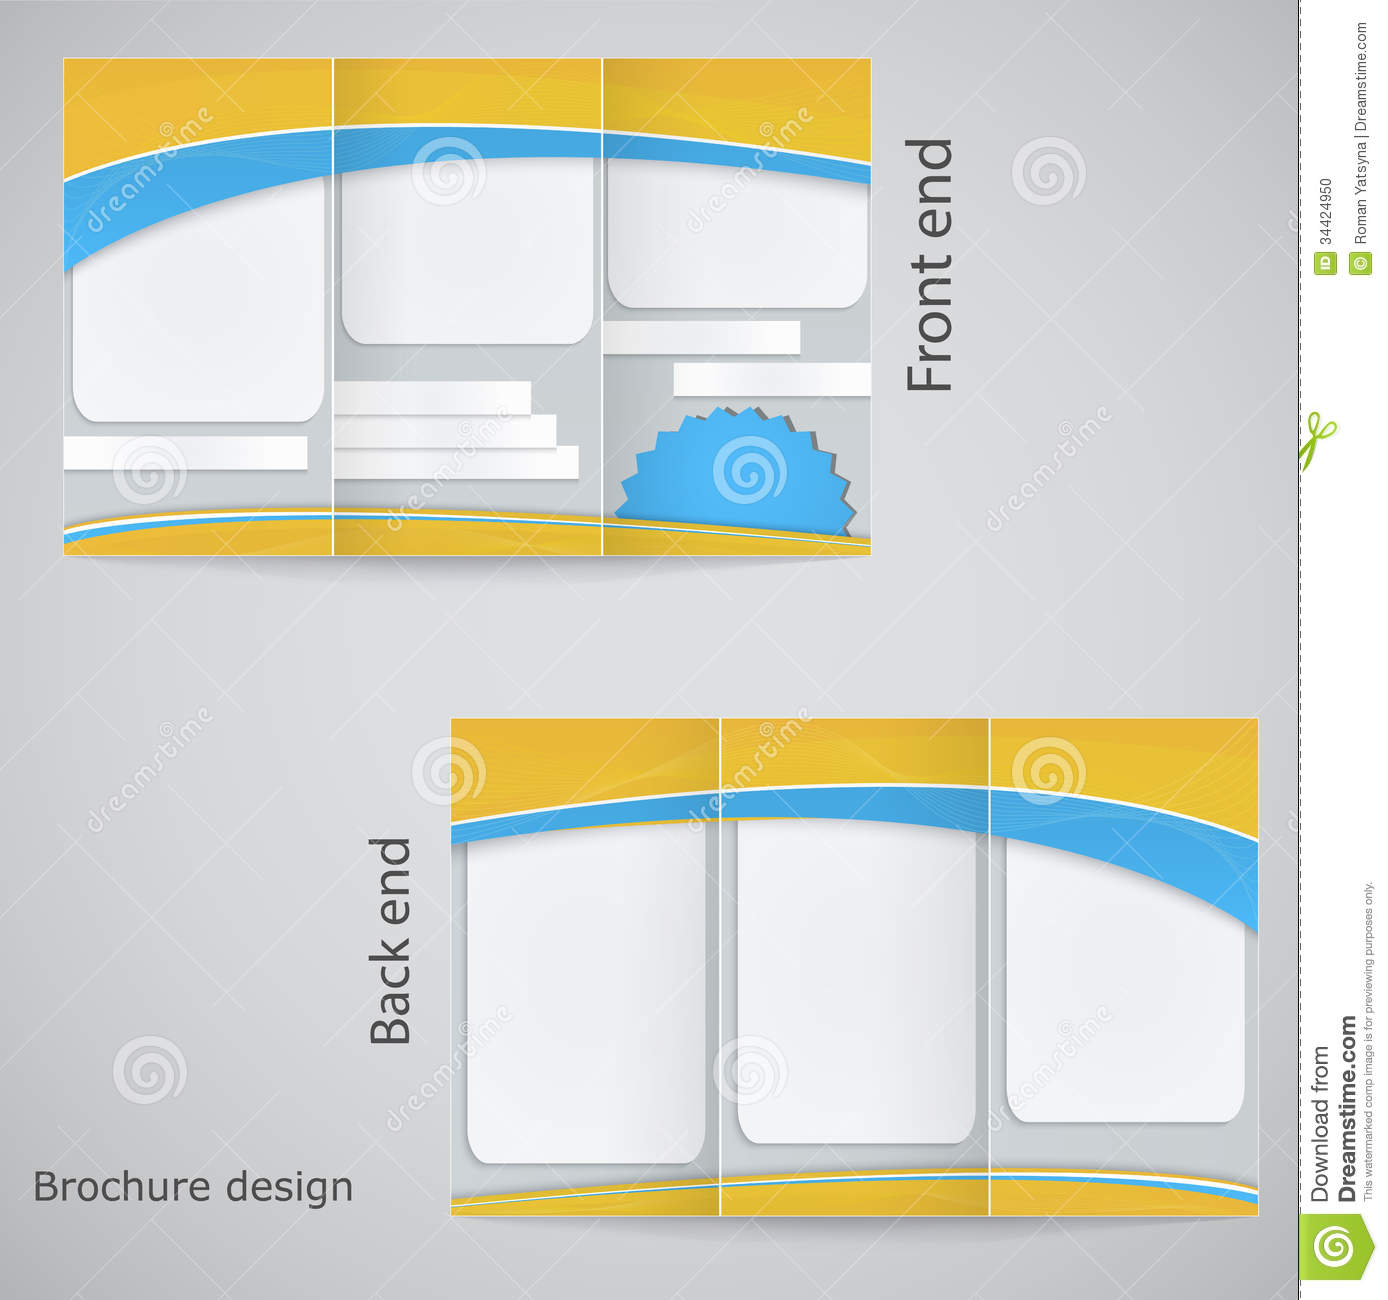 Trifold Brochure Design Stock Vector Illustration Of Branding - 3 folded brochure template